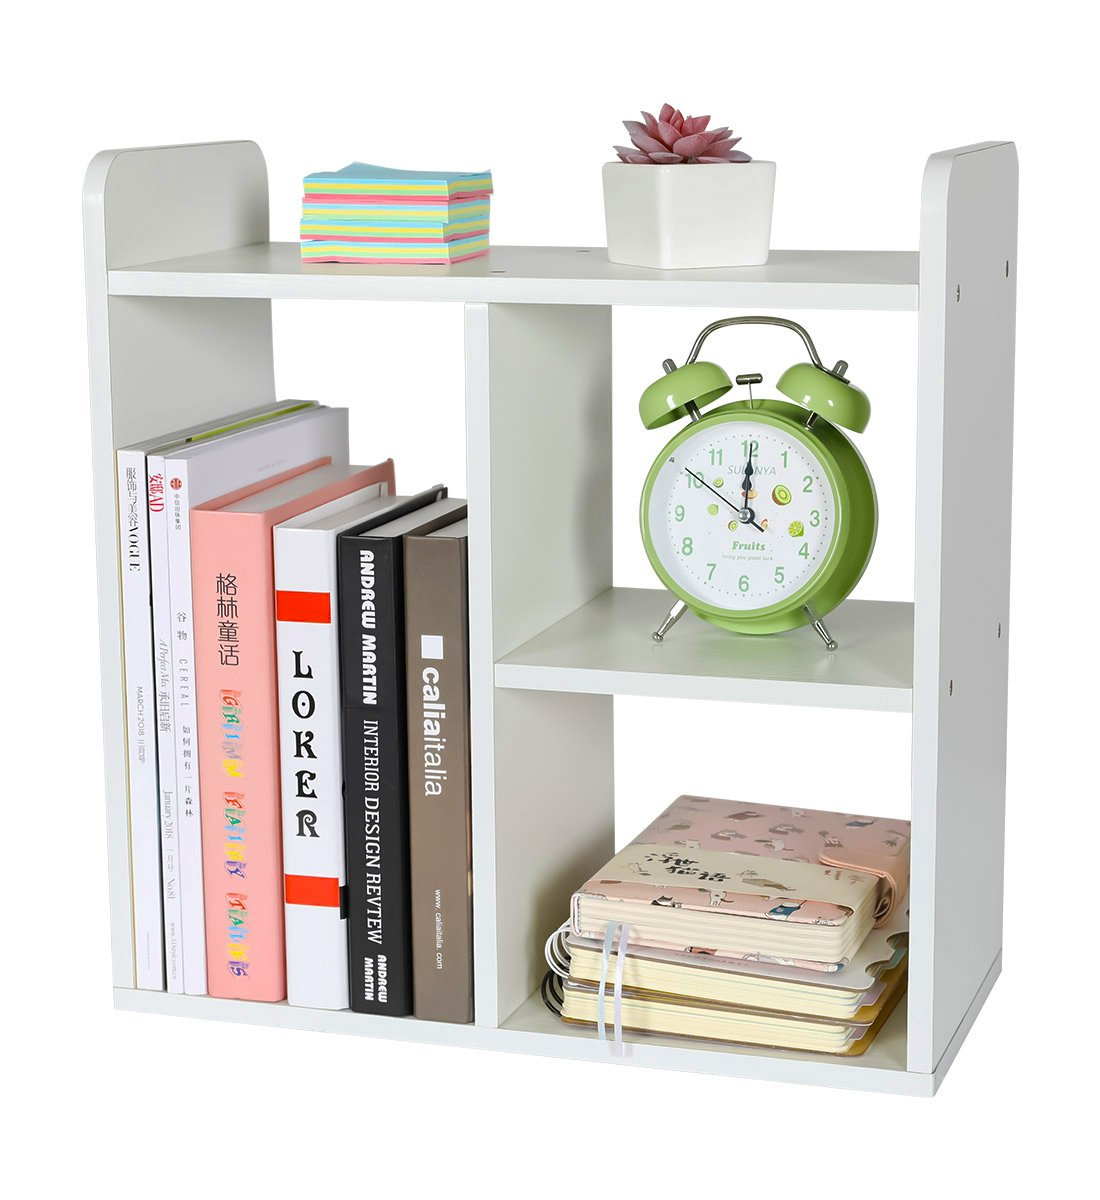 PAG Desktop Bookshelf Assemble Countertop Bookcase Office Supplies Wood Desk Organizer Accessories Display Rack, White